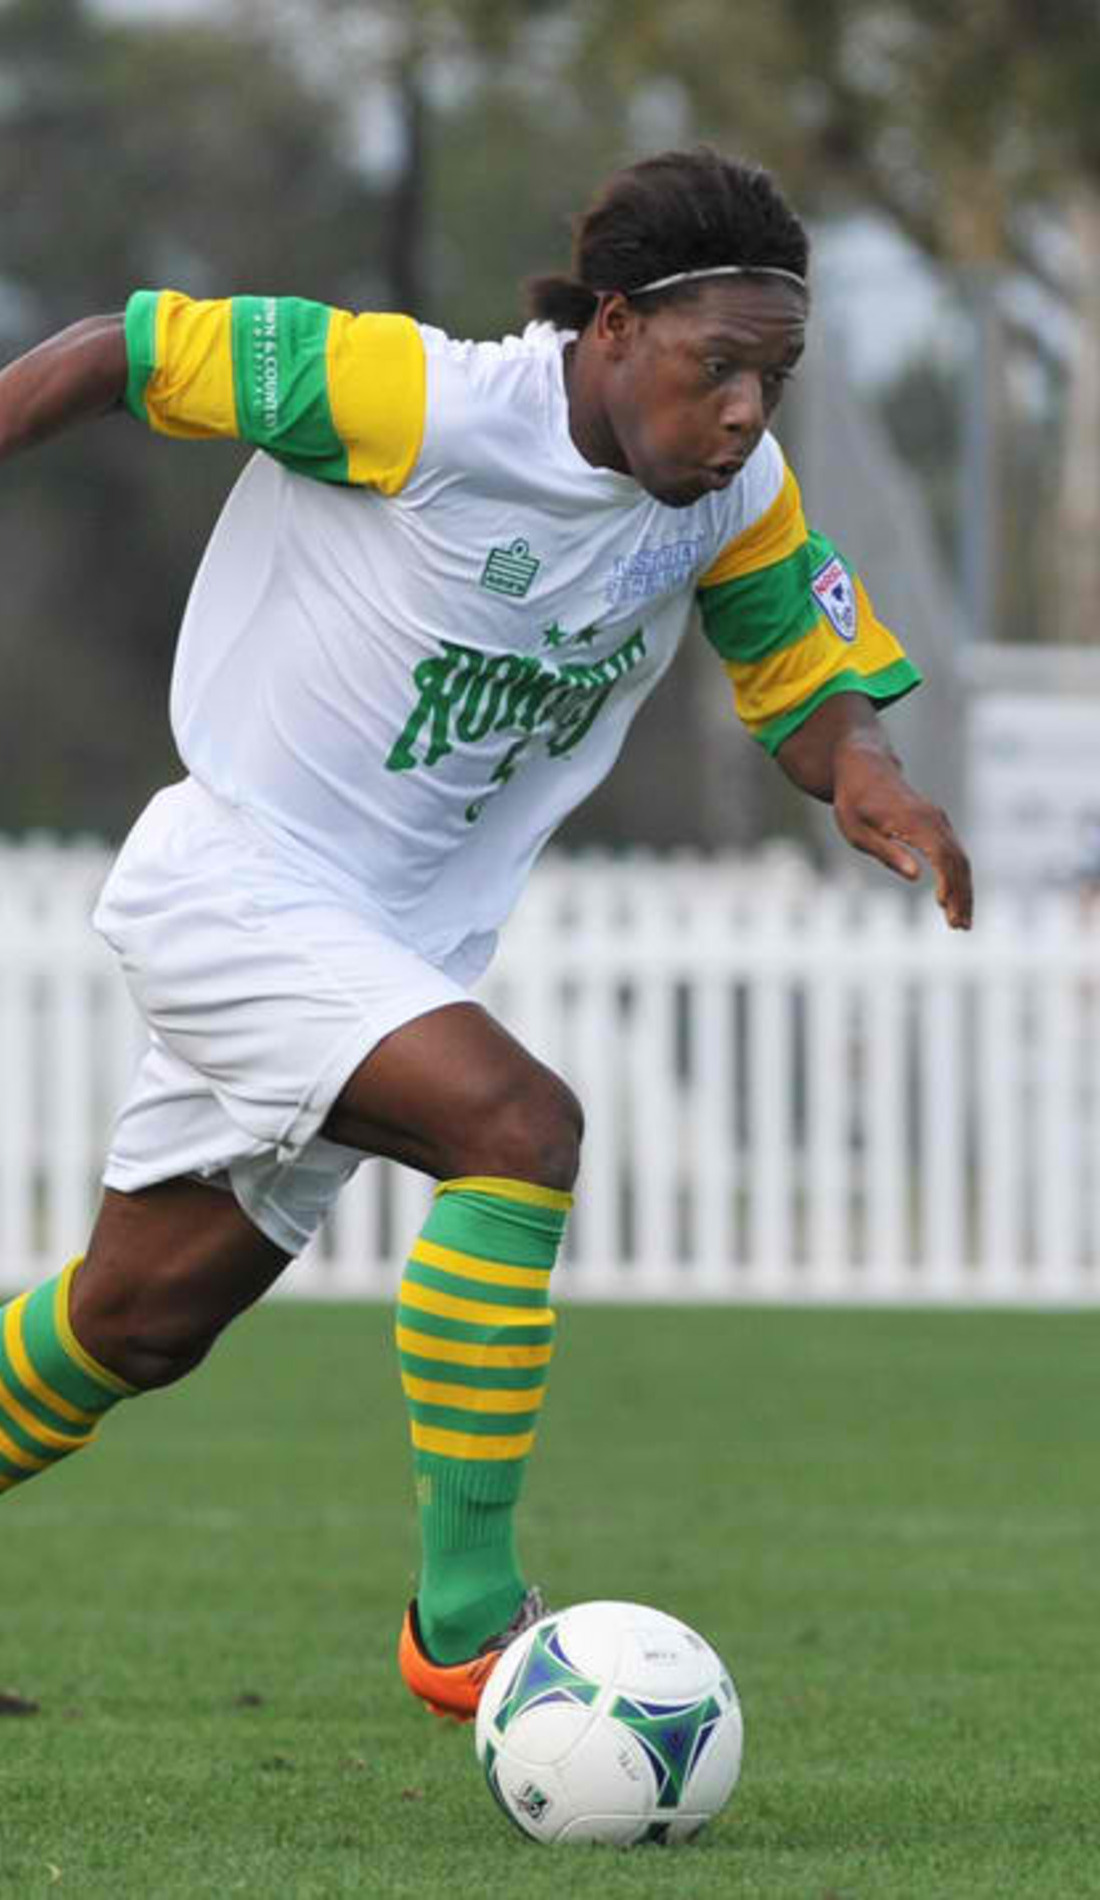 A Tampa Bay Rowdies live event